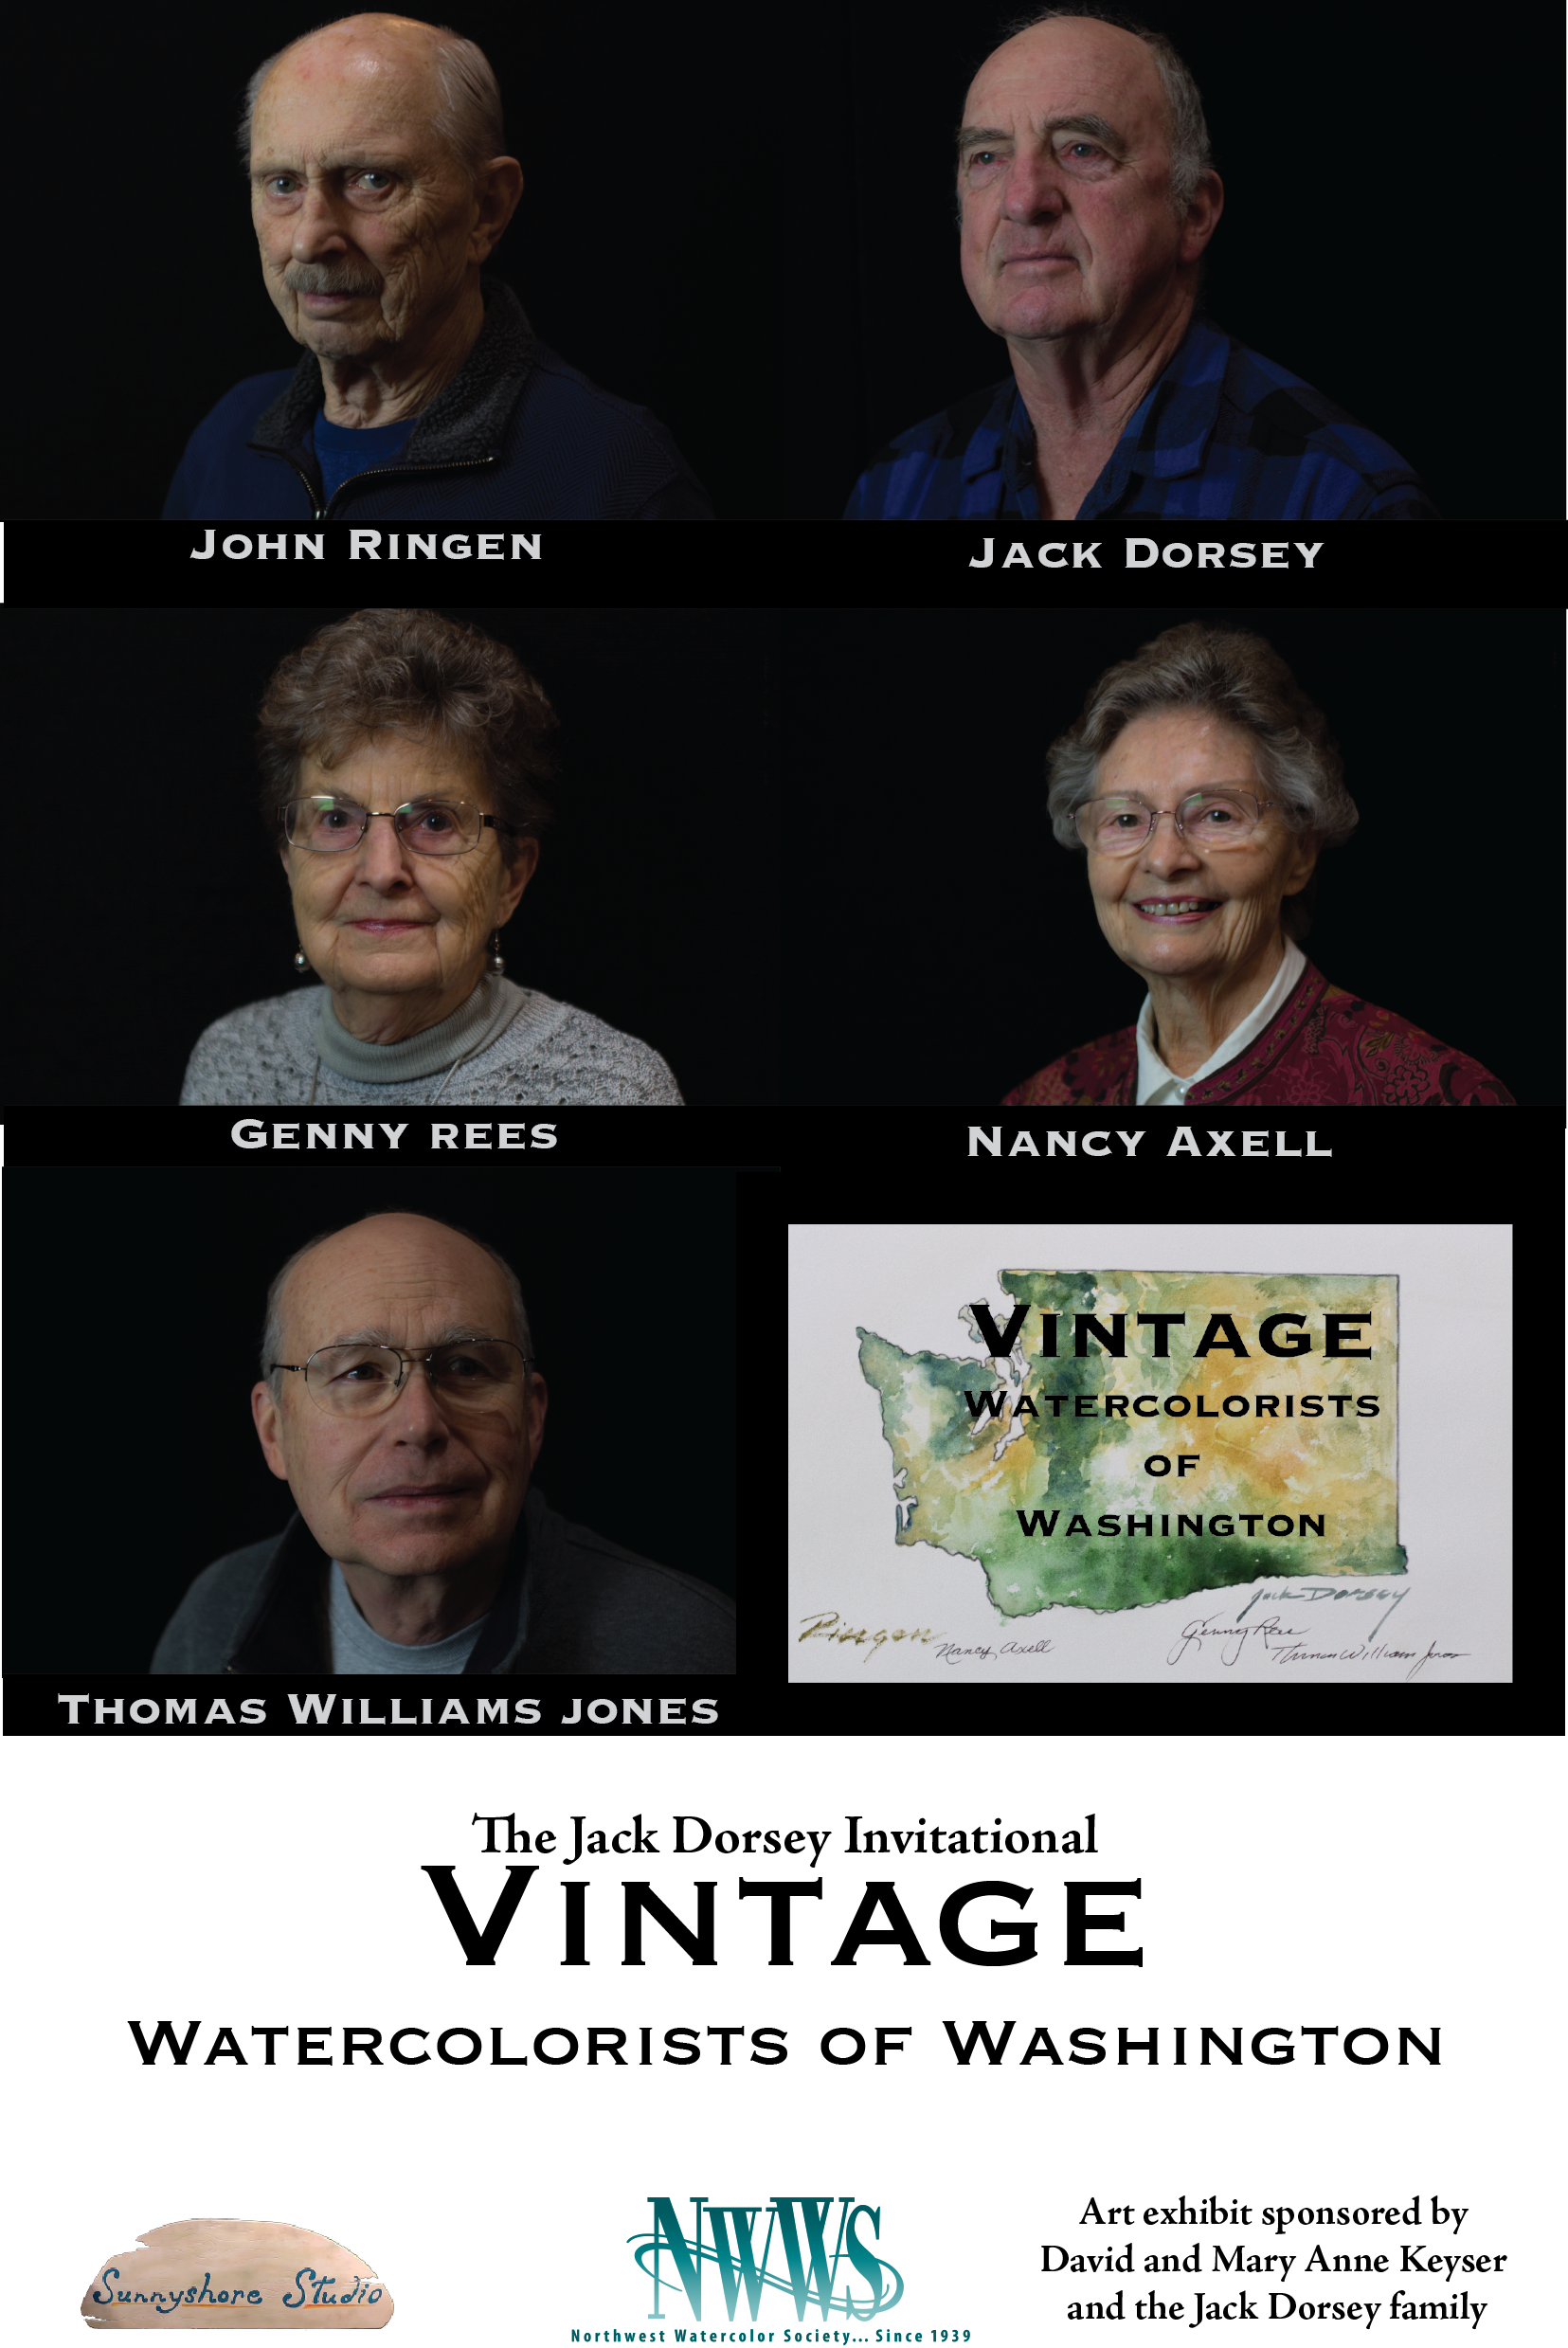 Sunnyshore Studio releases videos to celebrate and preserve the stories of five Vintage Watercolorists of Washington